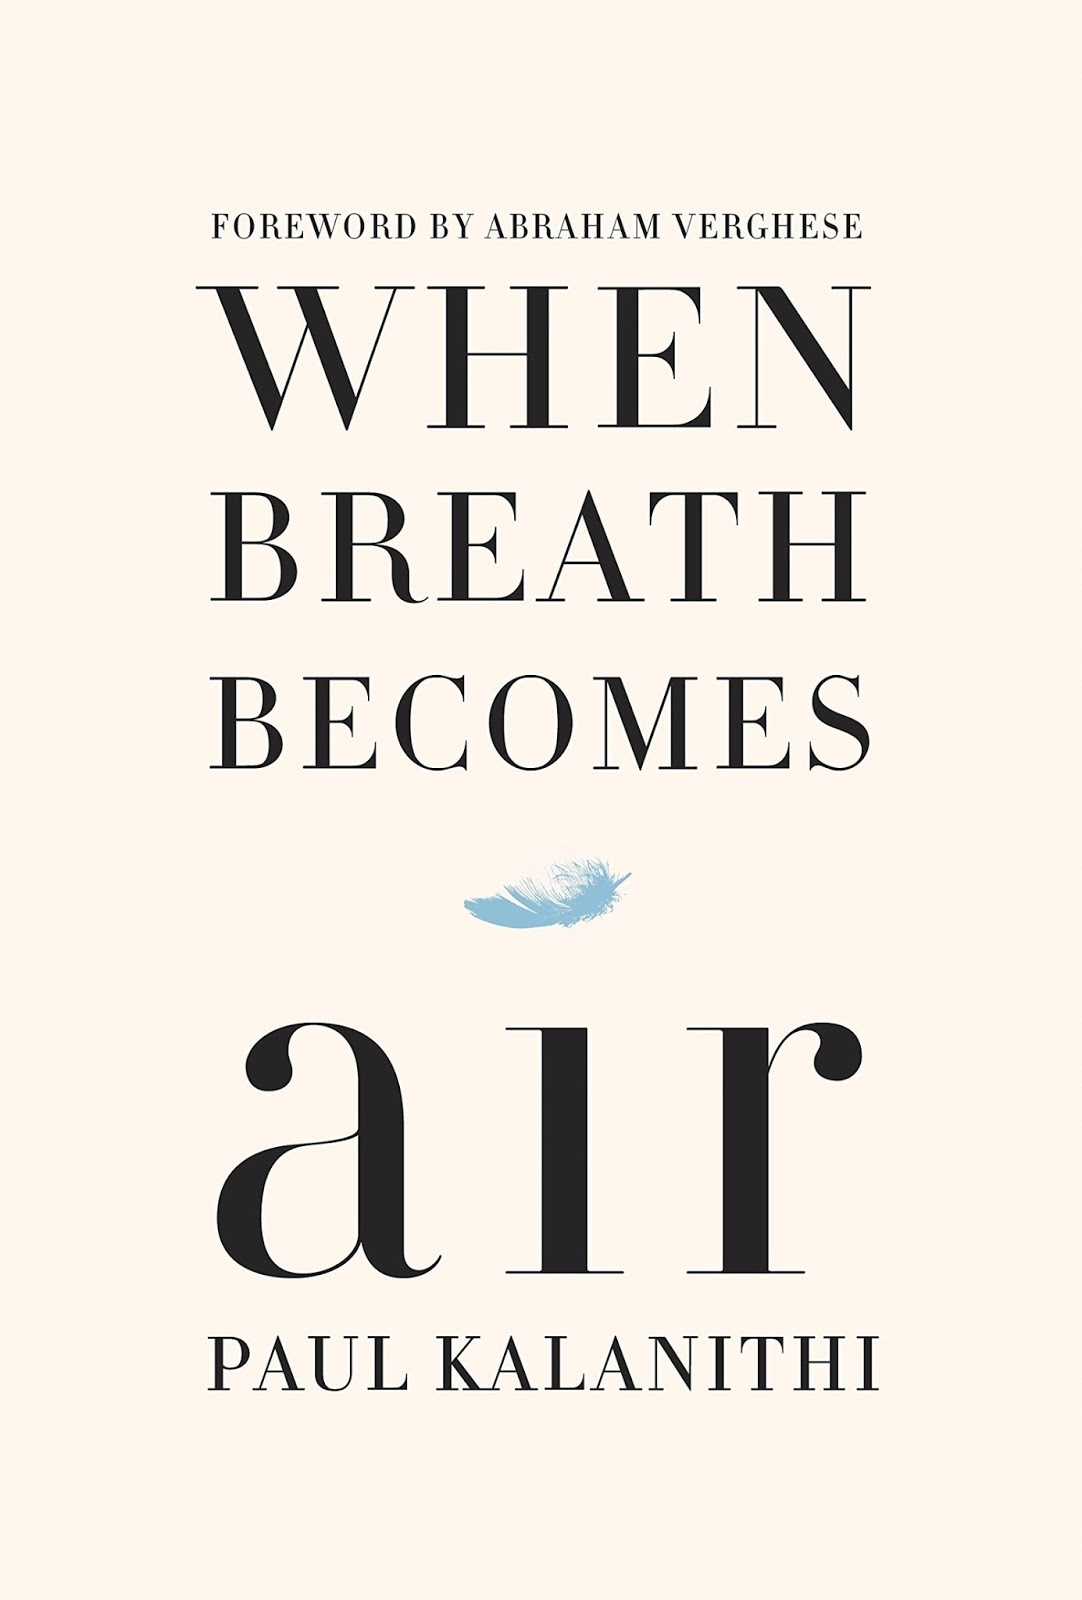 When Breath Becomes Air - Paul Kalanithi [kindle] [mobi]